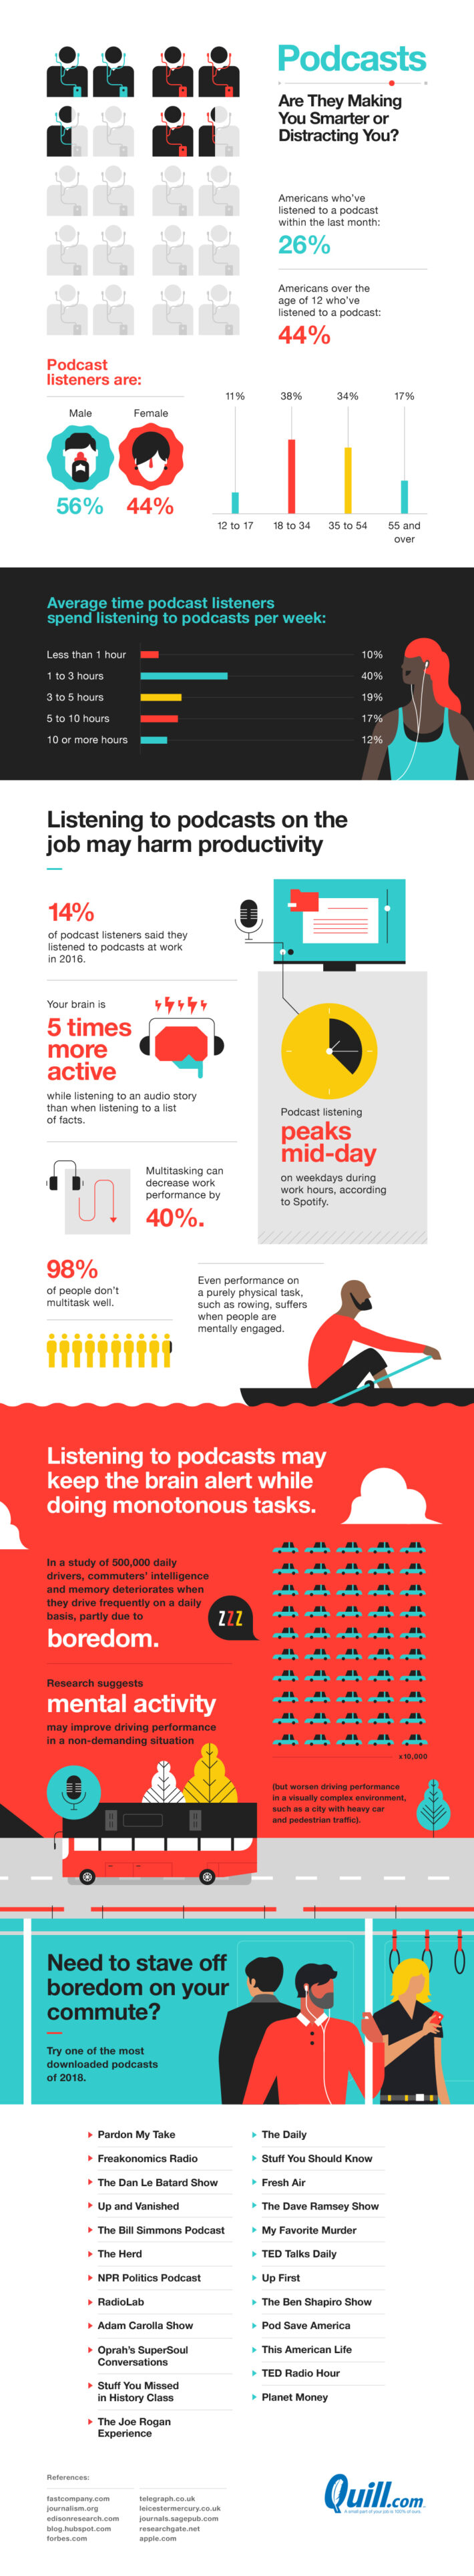 Is it bad to listen to podcasts all day?